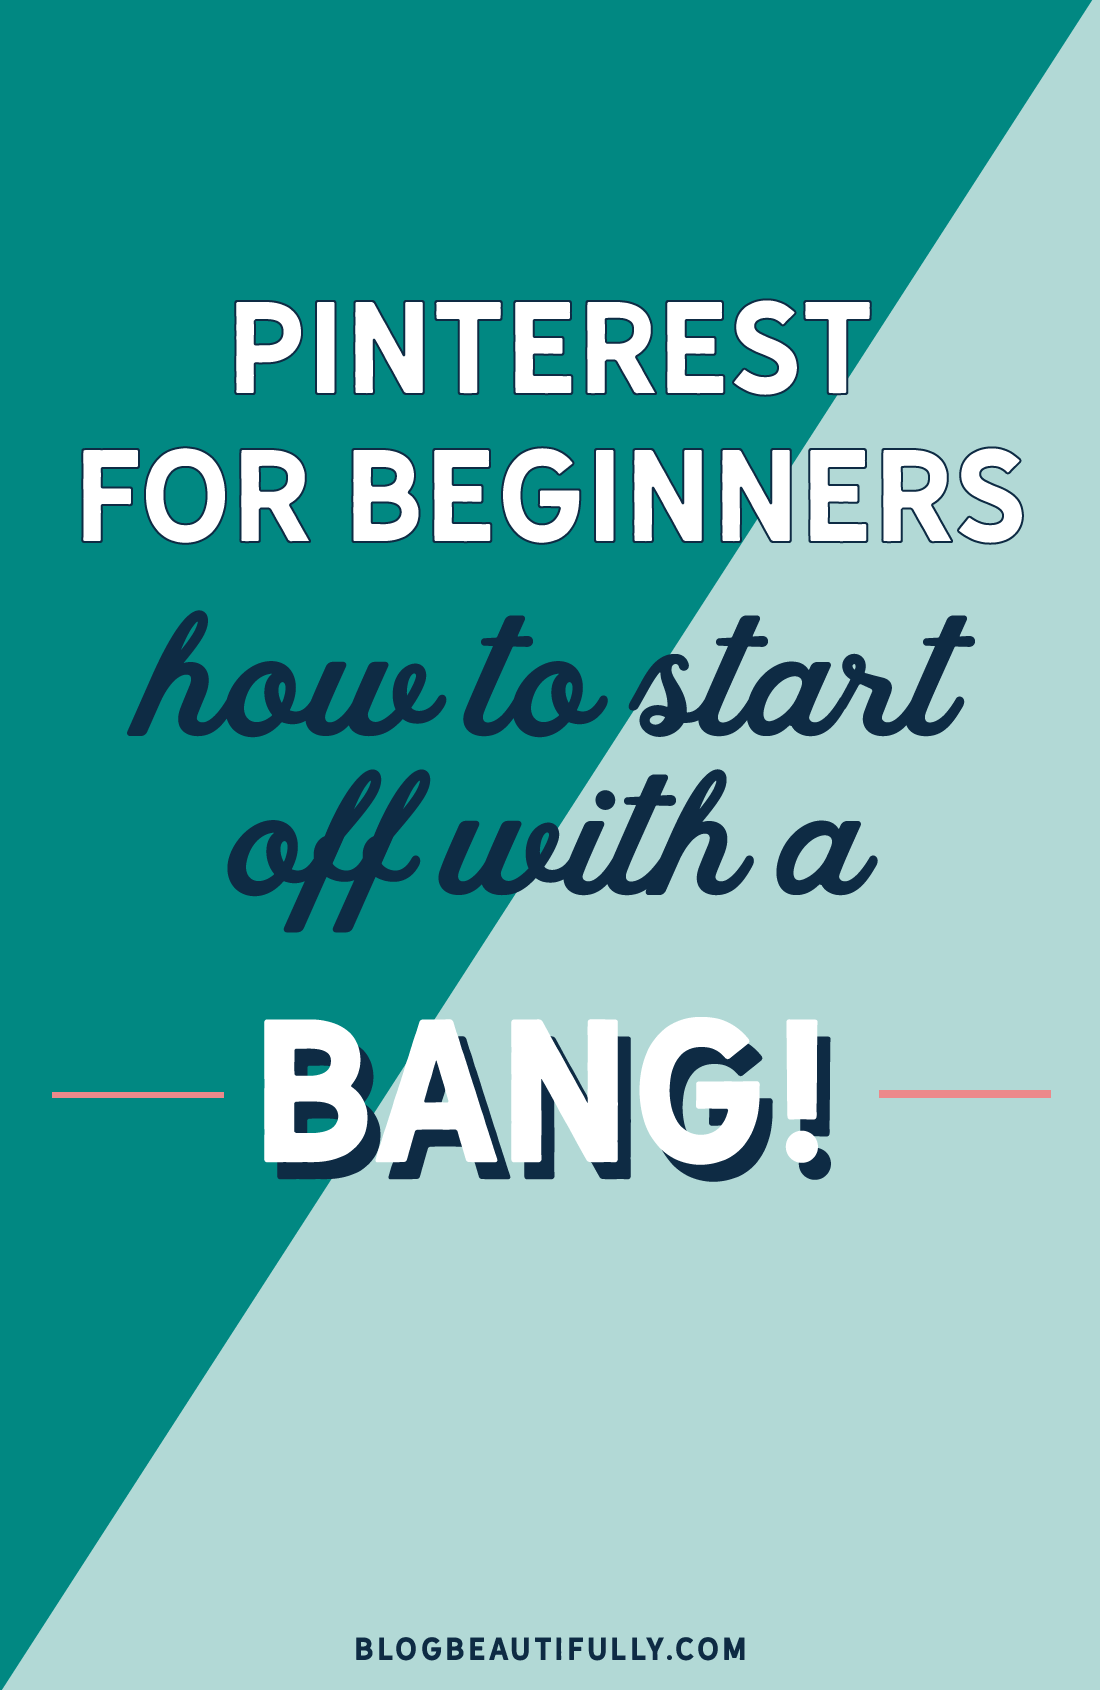 Start your Pinterest account with a BANG!! Use these 12 action items for Pinterest beginners to get the ball rolling!